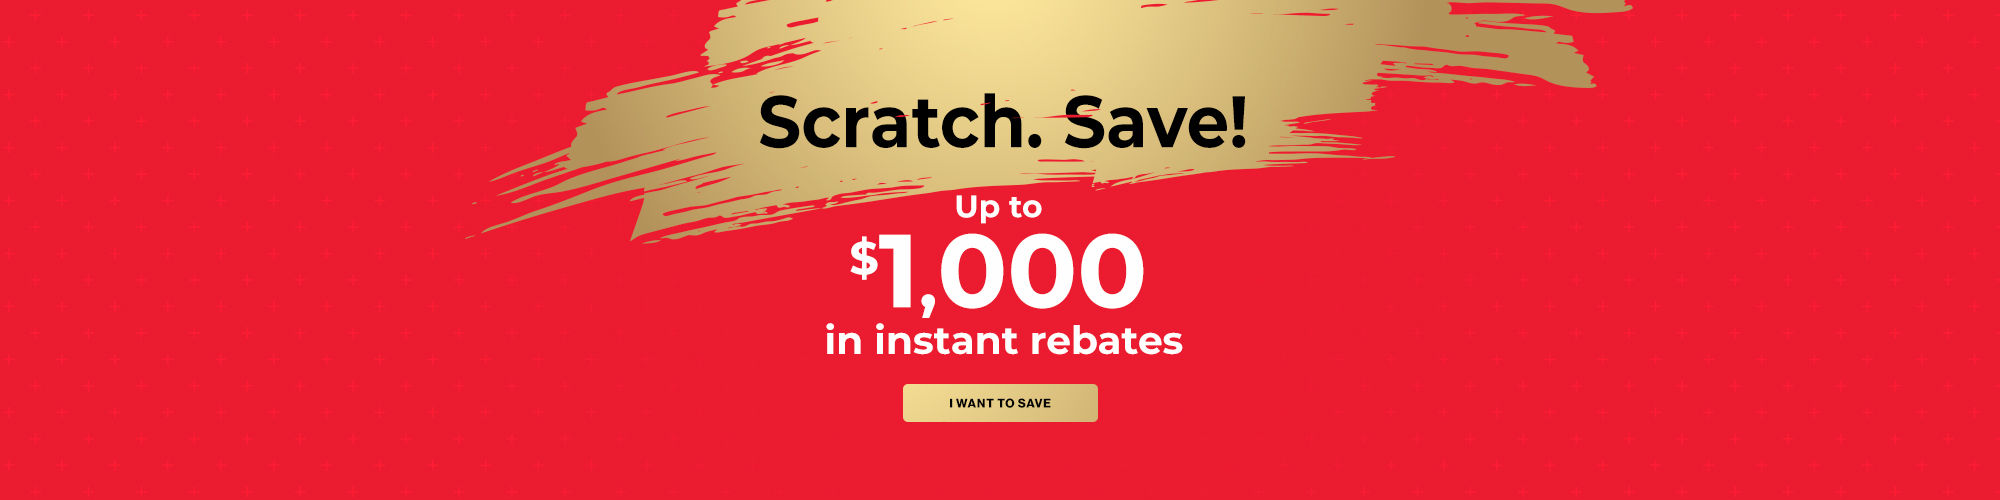 Scratch and Save Sales Event